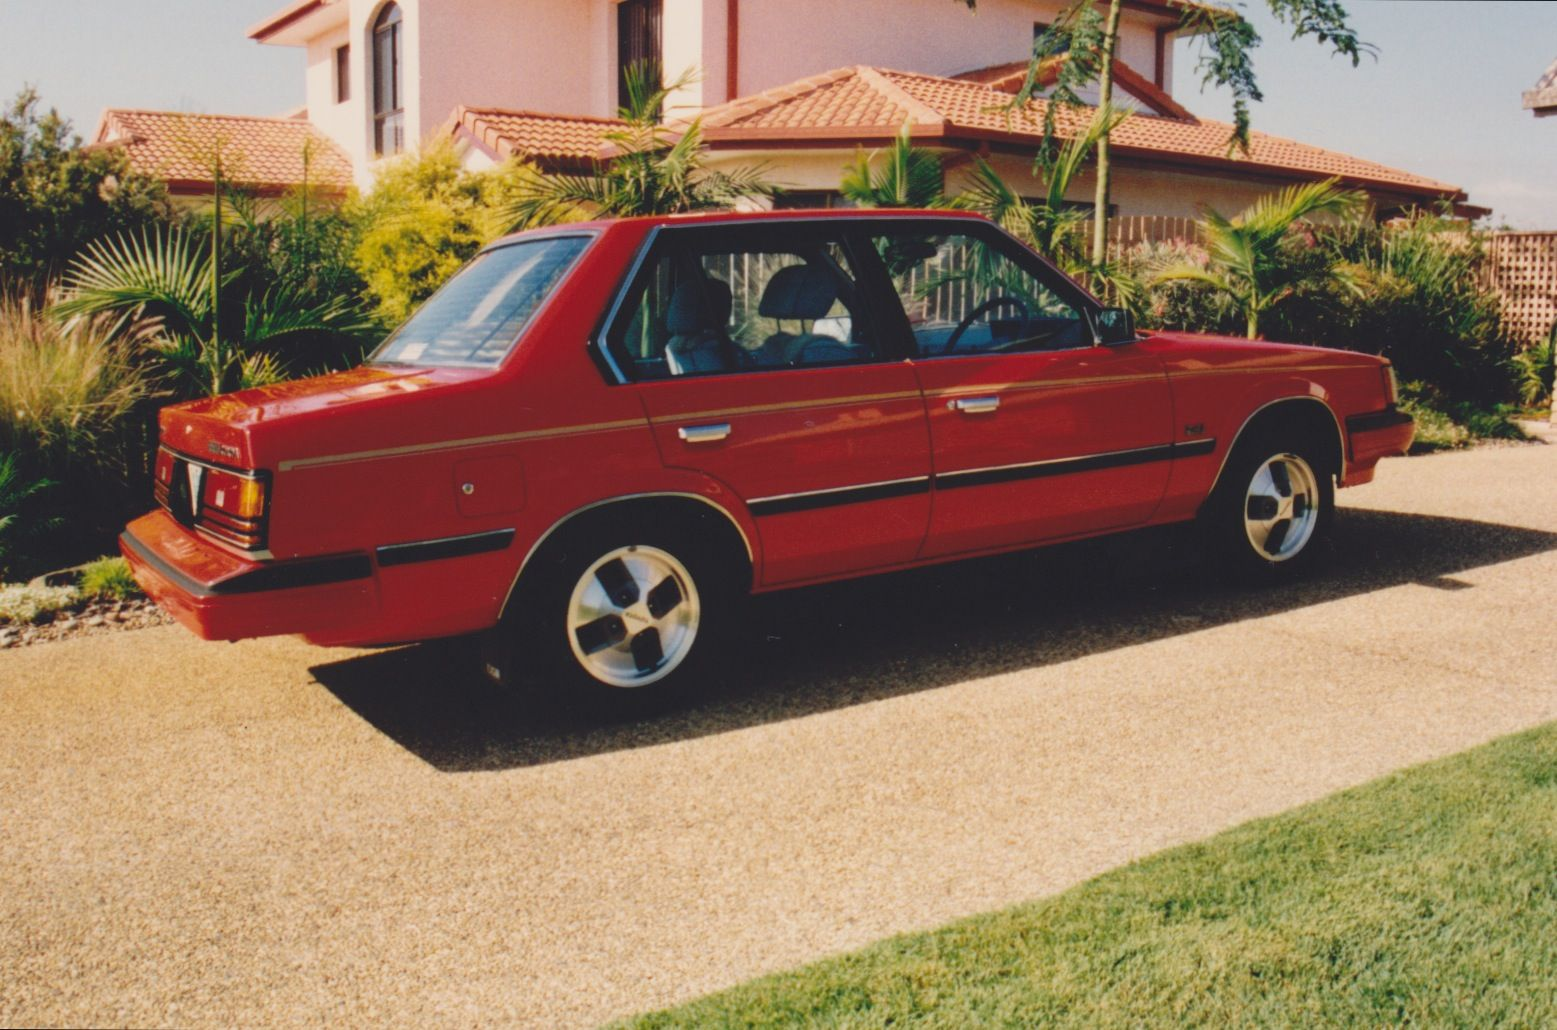 toyota corona avante two litre four cylinder manual 1985 1991 rh pinterest com Toyota Corona 2000 toyota corolla 1985 service manual